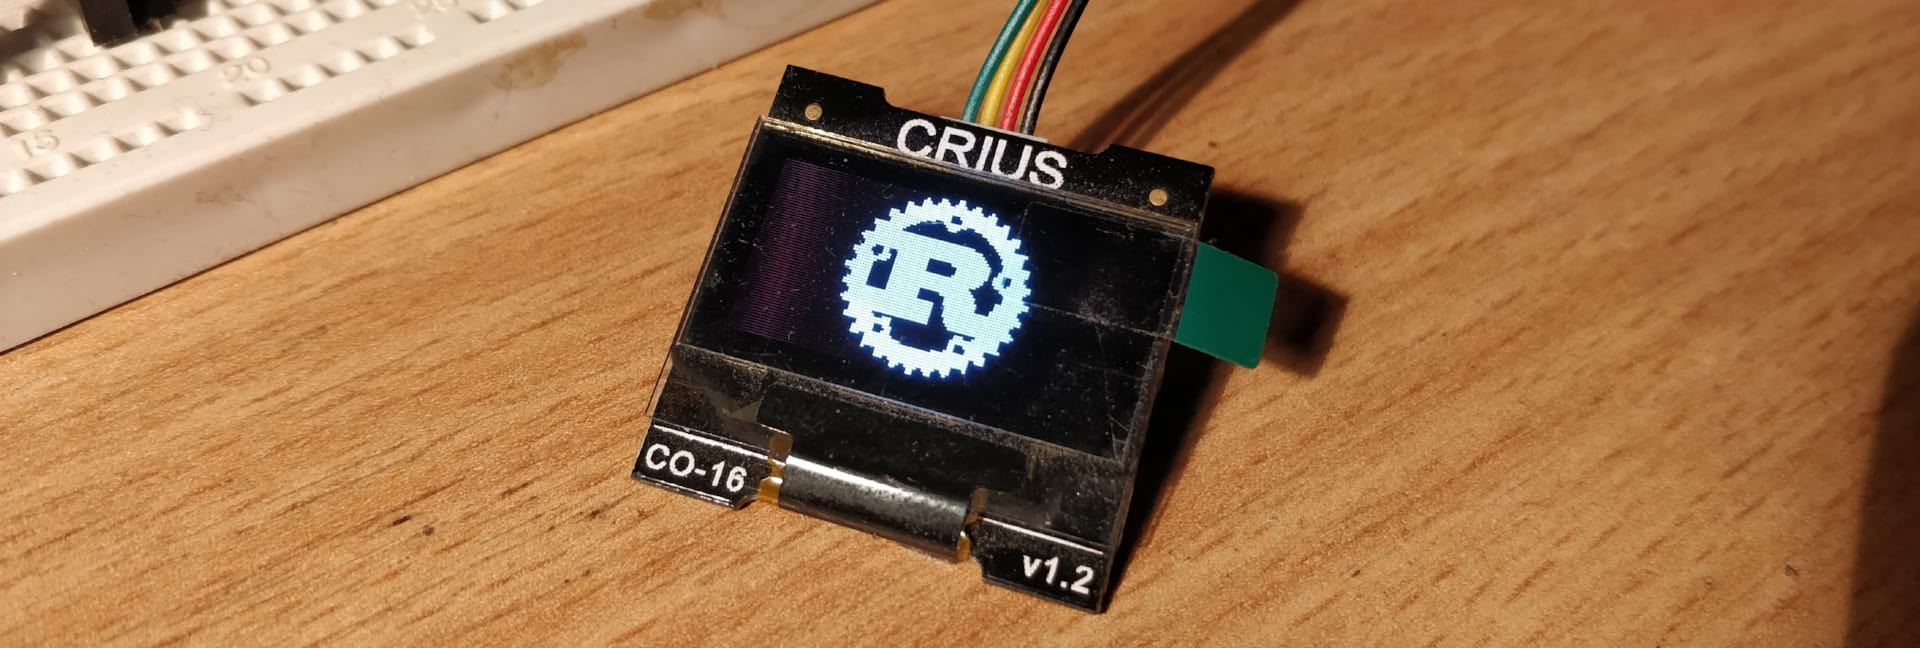 CRIUS display showing the Rust logo